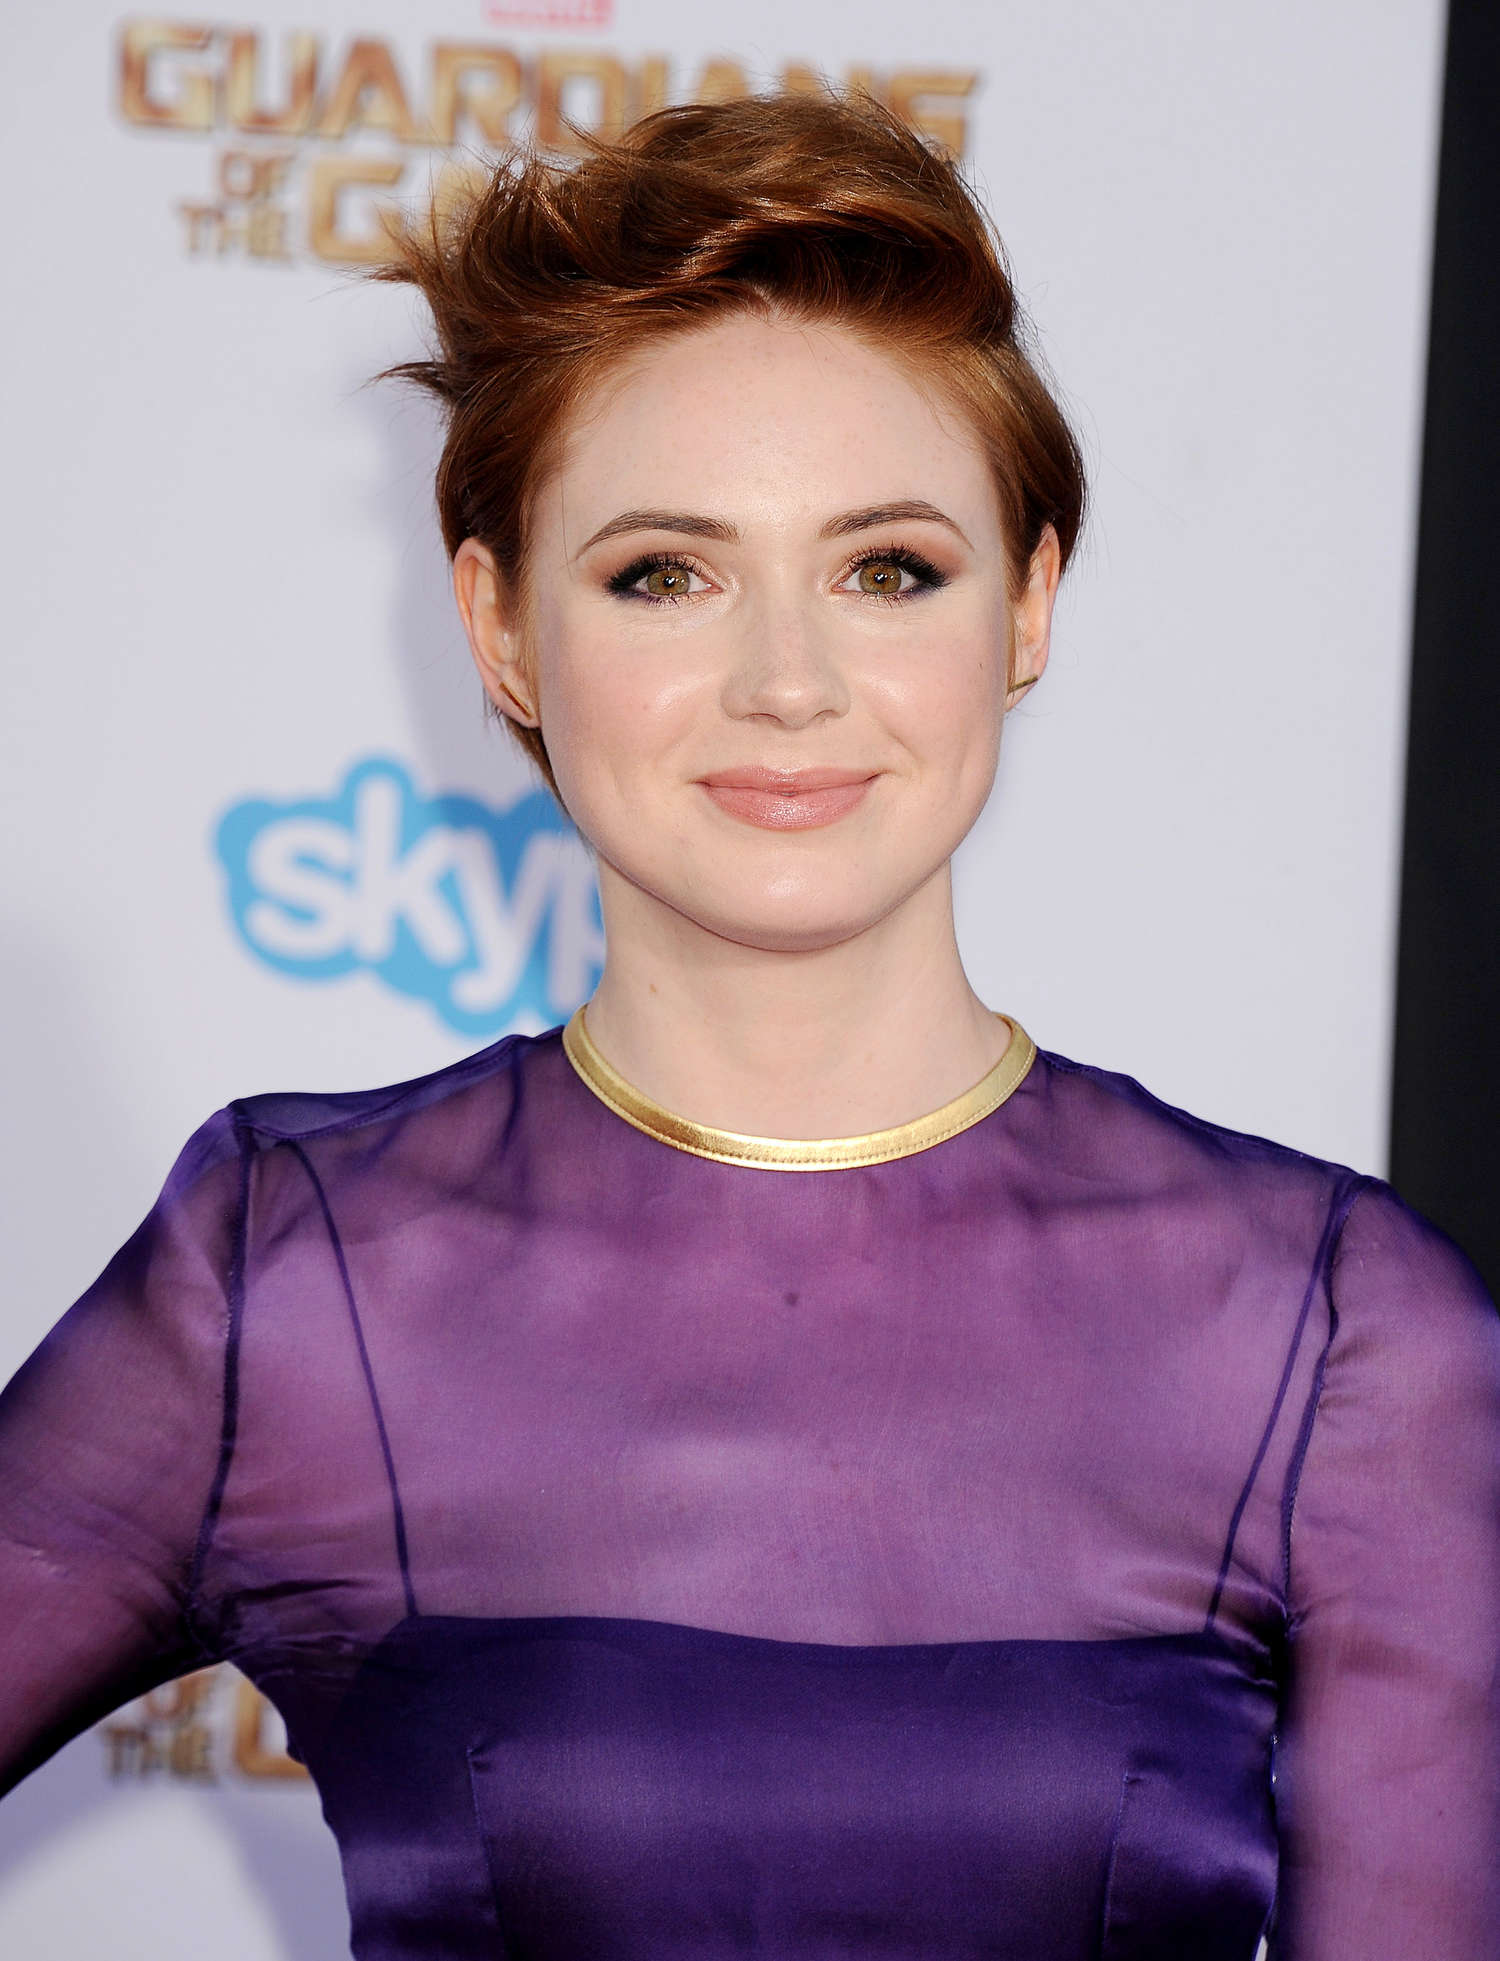 Karen-Gillan--Guardians-Of-The-Galaxy-LA-Premiere--16.jpg